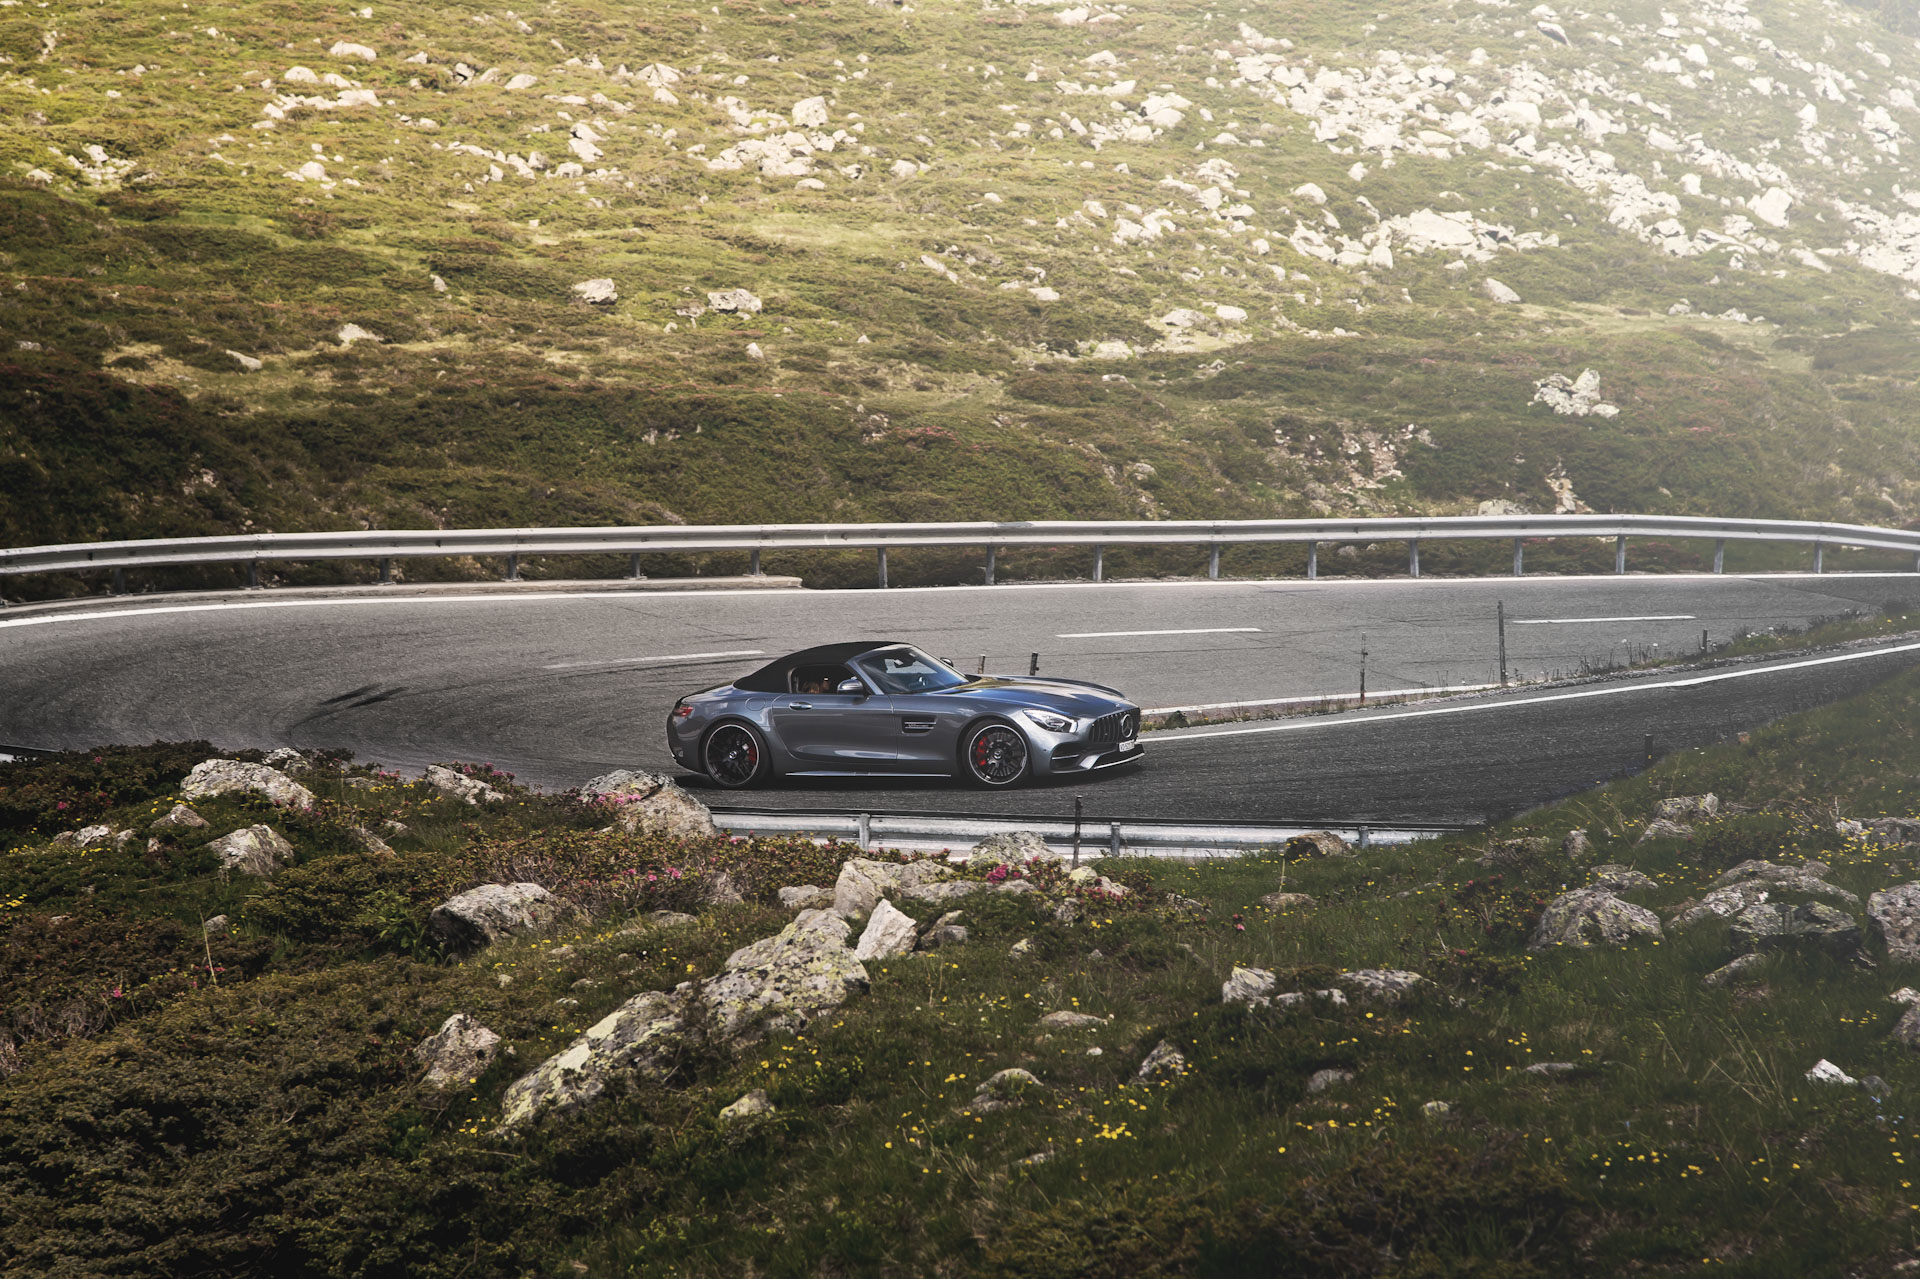 Supercar Experiences Alps - Mercedes AMG GTC